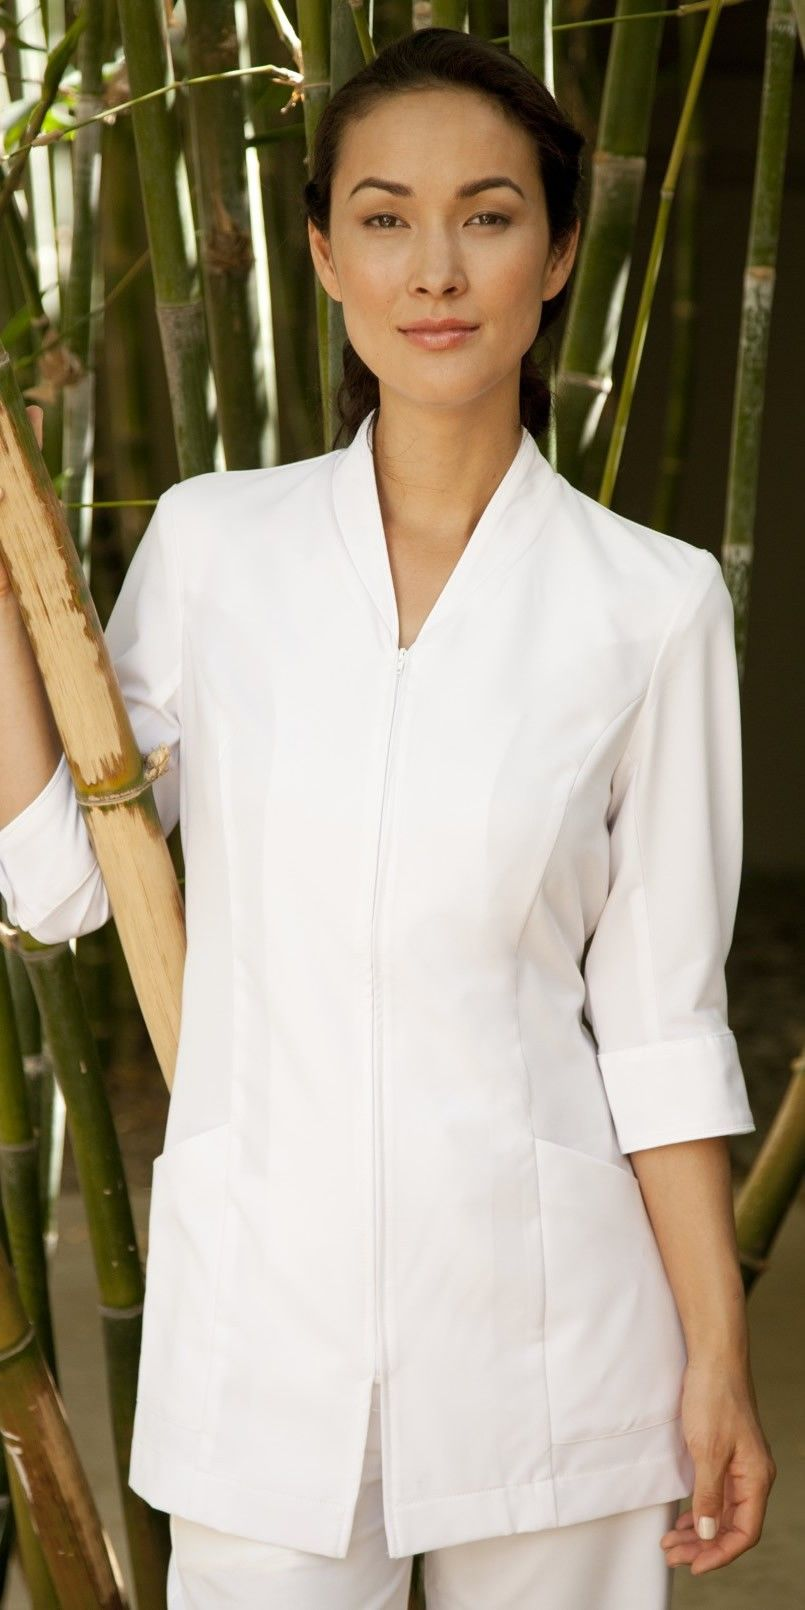 White w white piping teaching pinterest spa and for Spa uniform photos